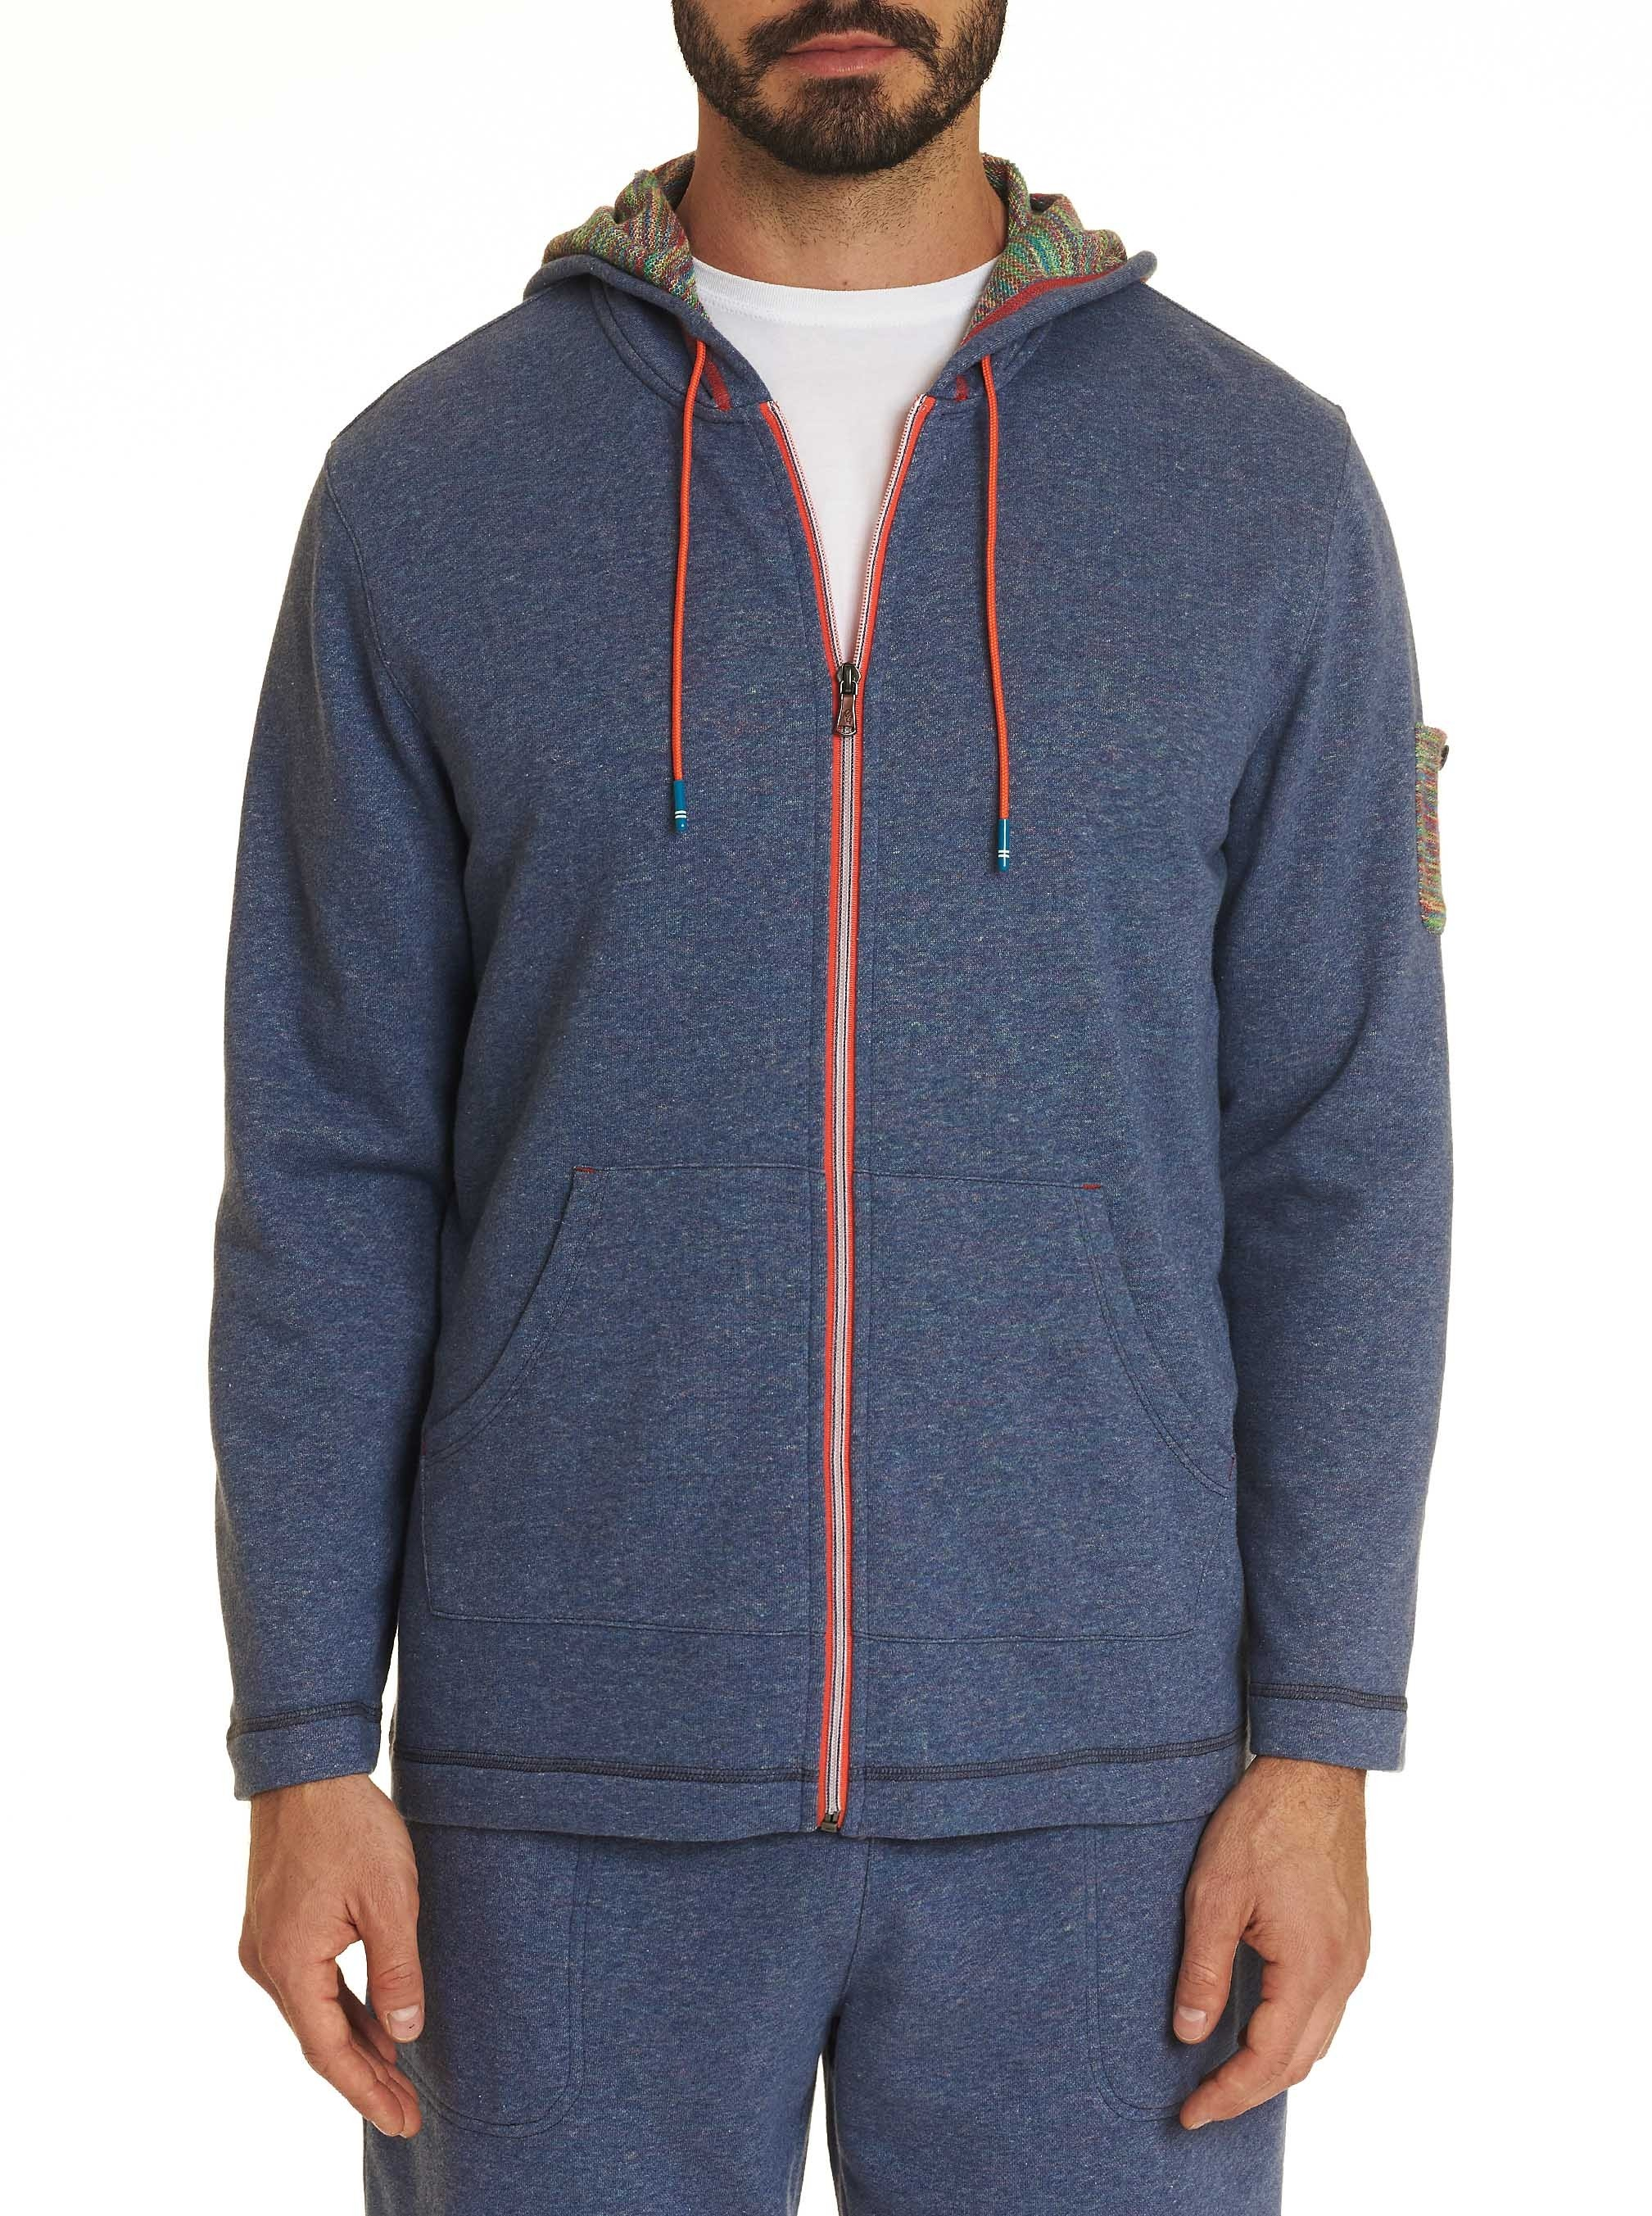 Robert Graham French Terry Knit Hoodie Blue